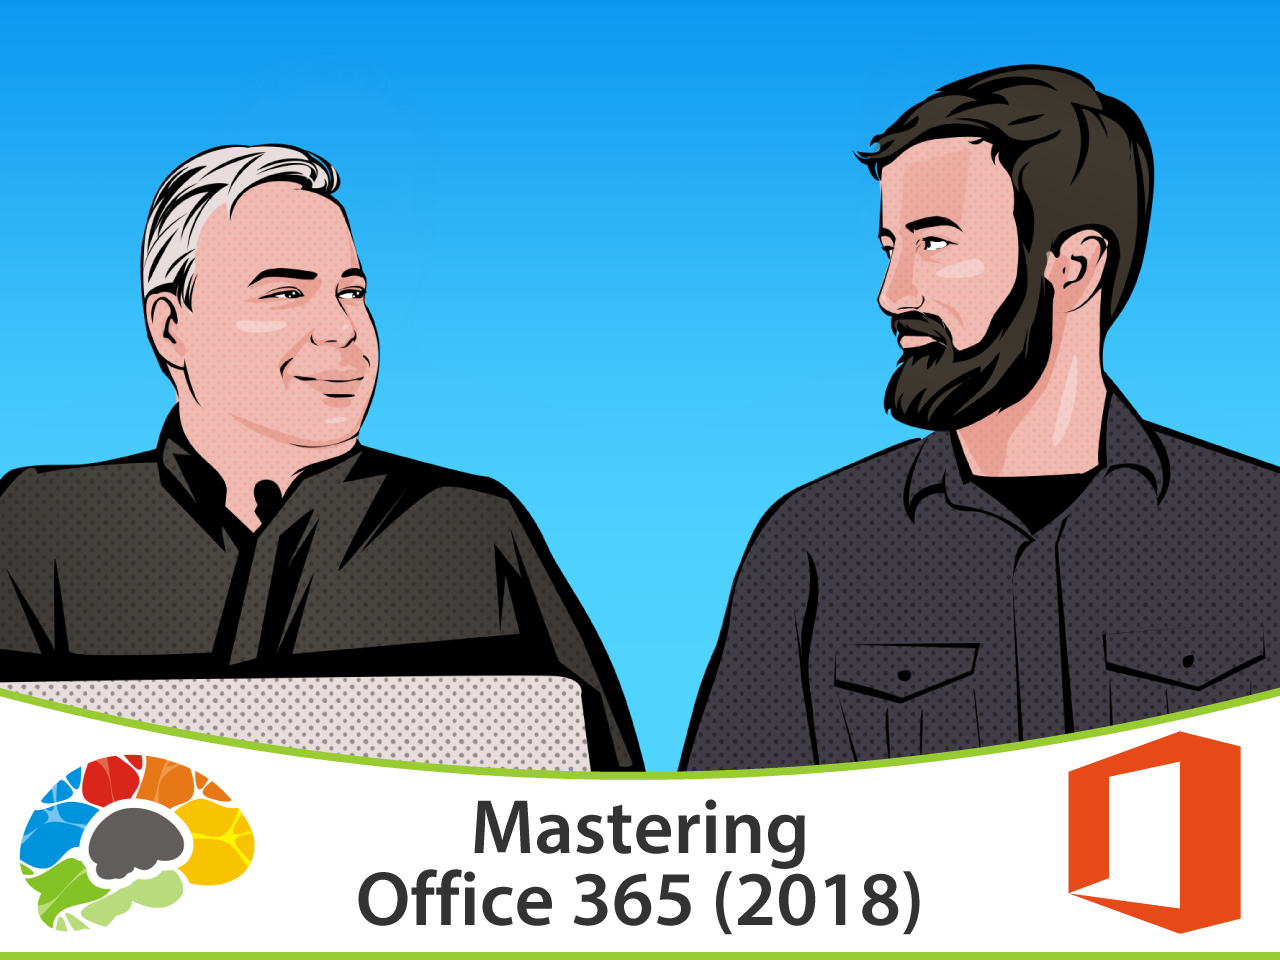 Mastering Office 365 (2018) - SkillsFuture Online Course